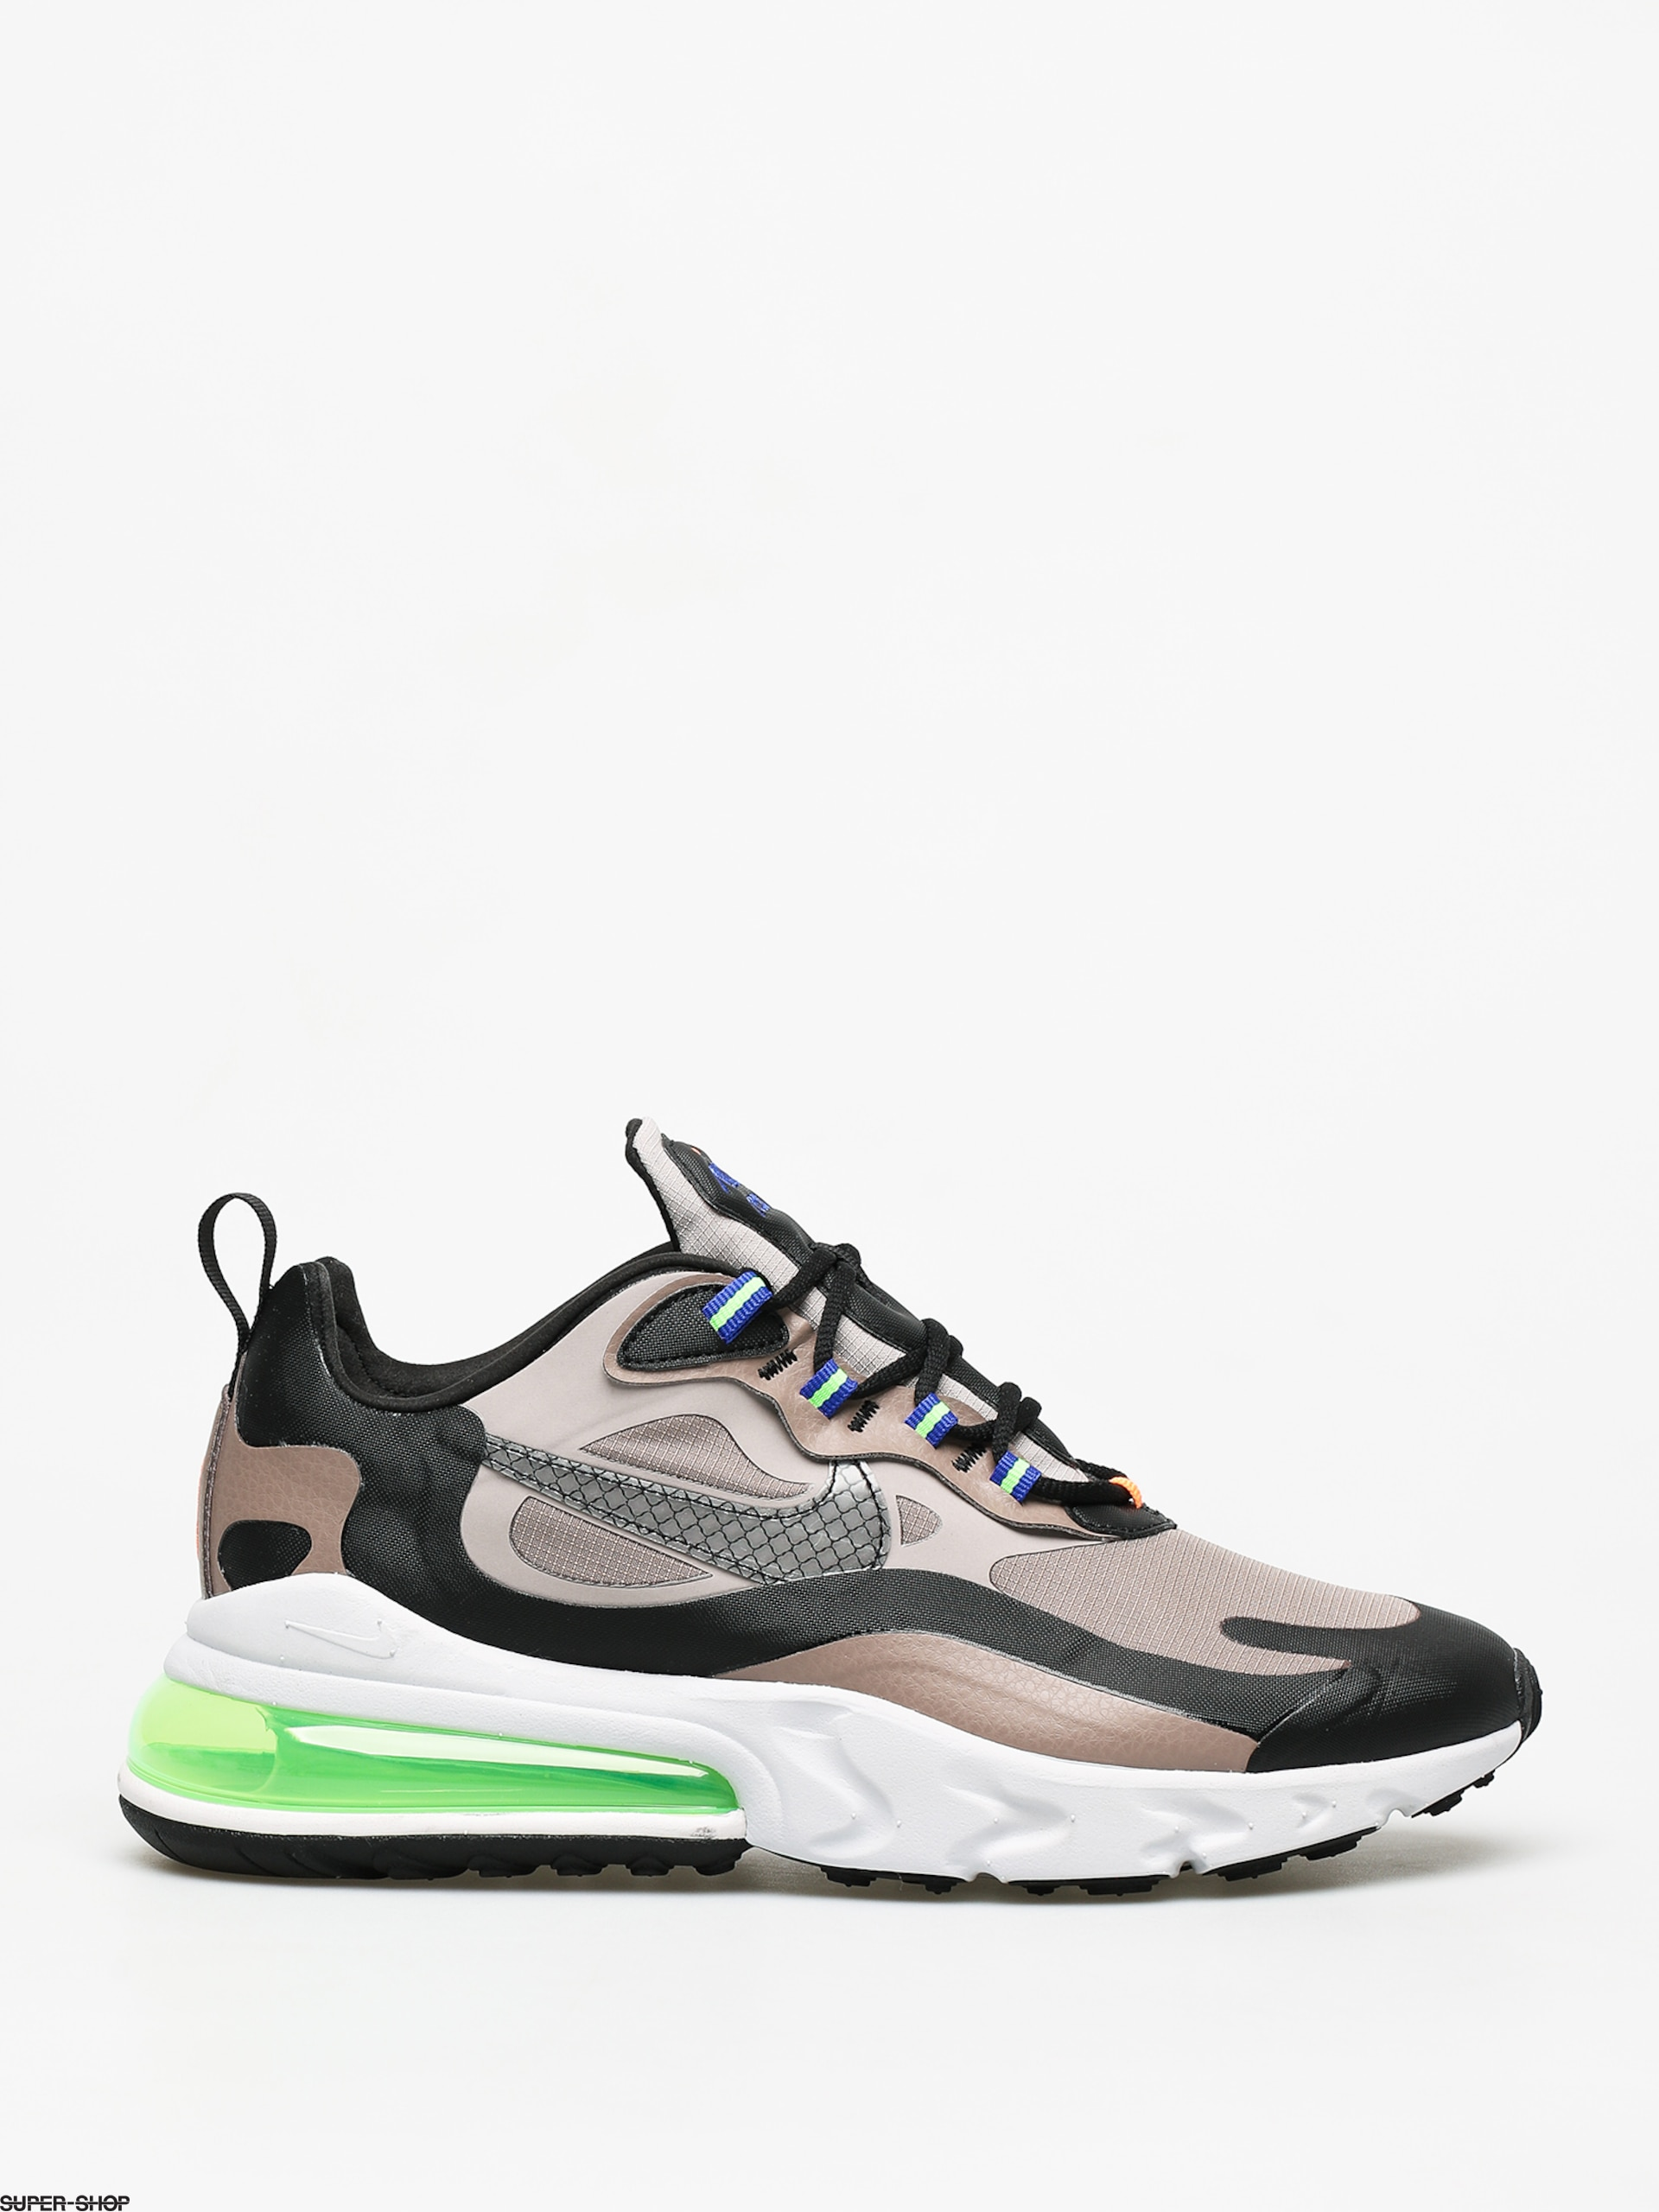 air max 270 moon particle